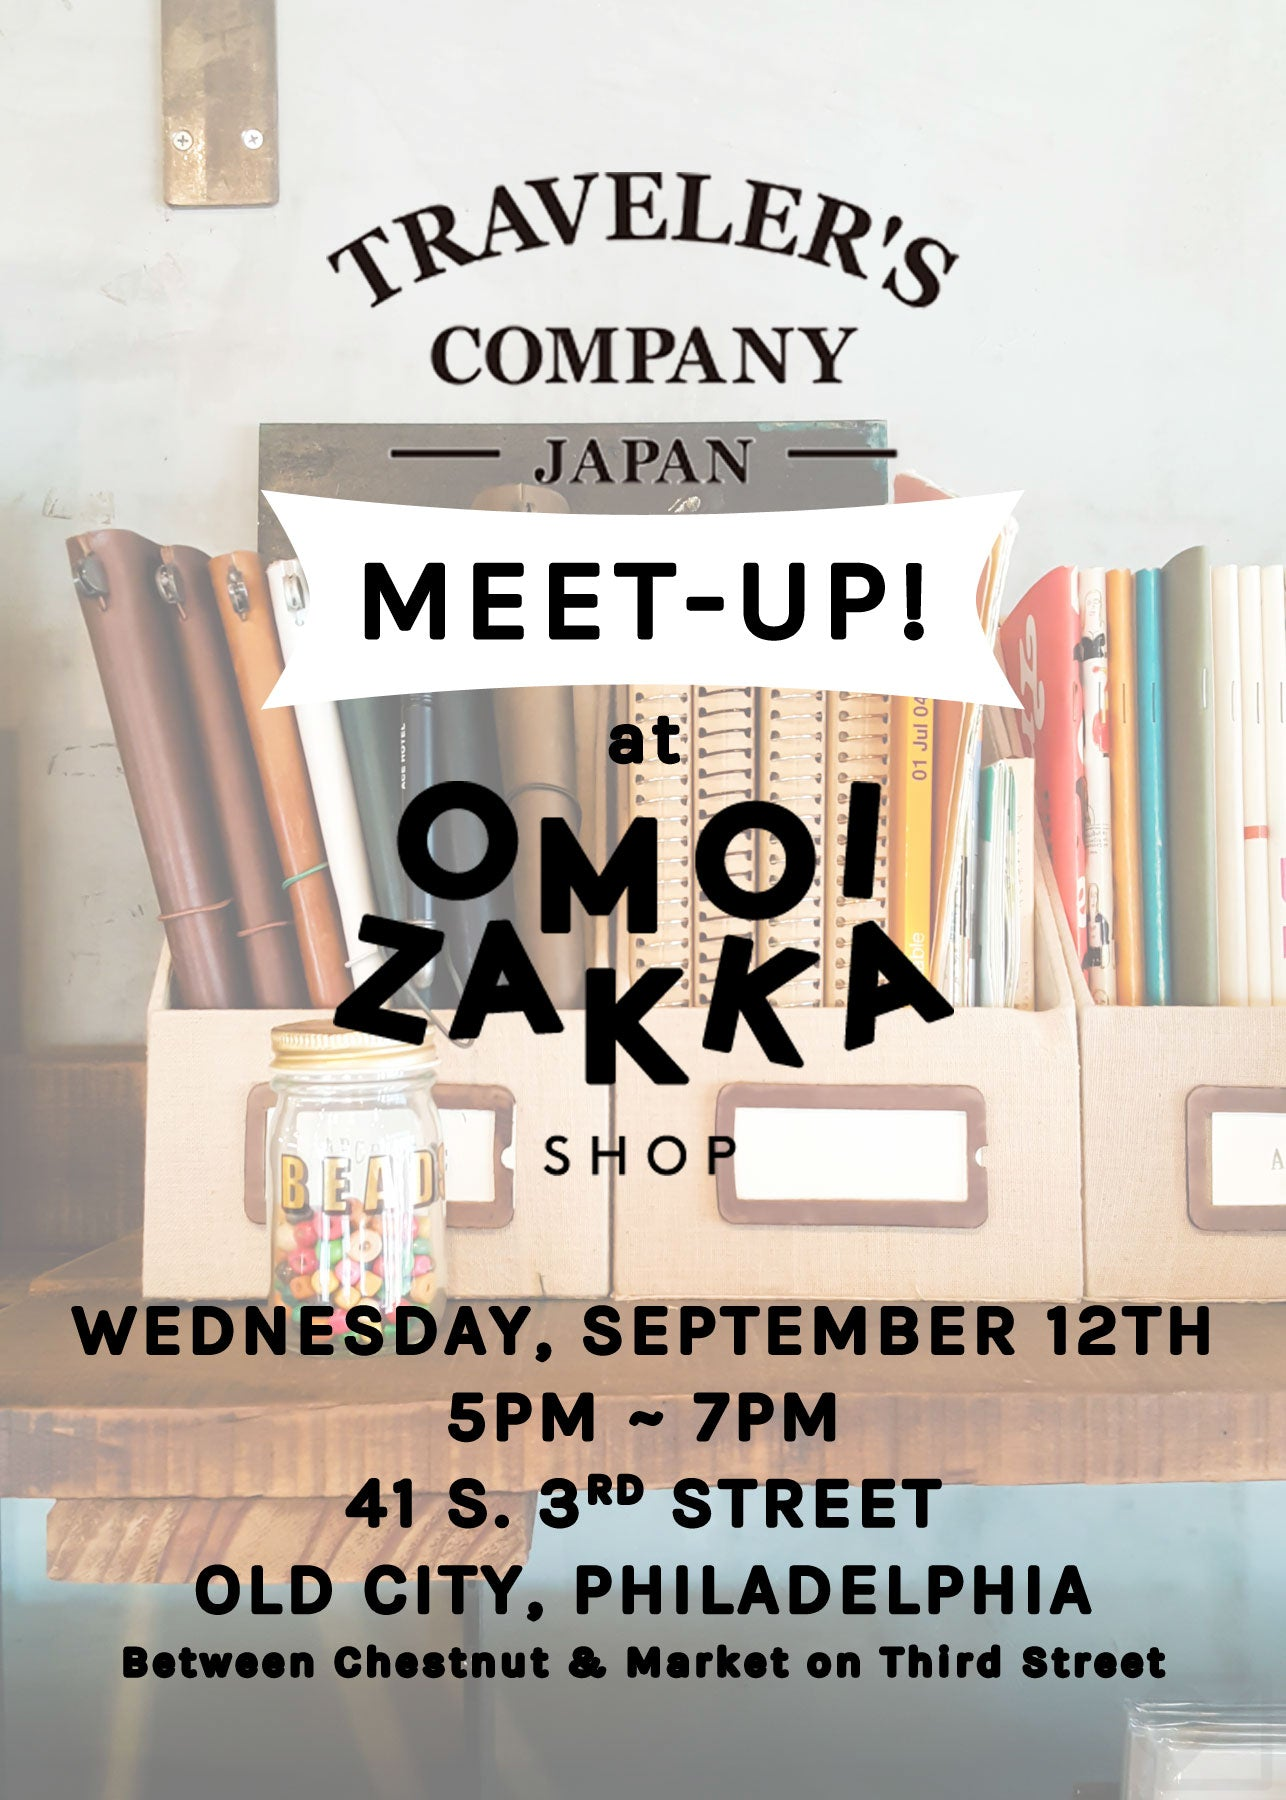 Our first ever TRAVELER'S Company MEETUP!